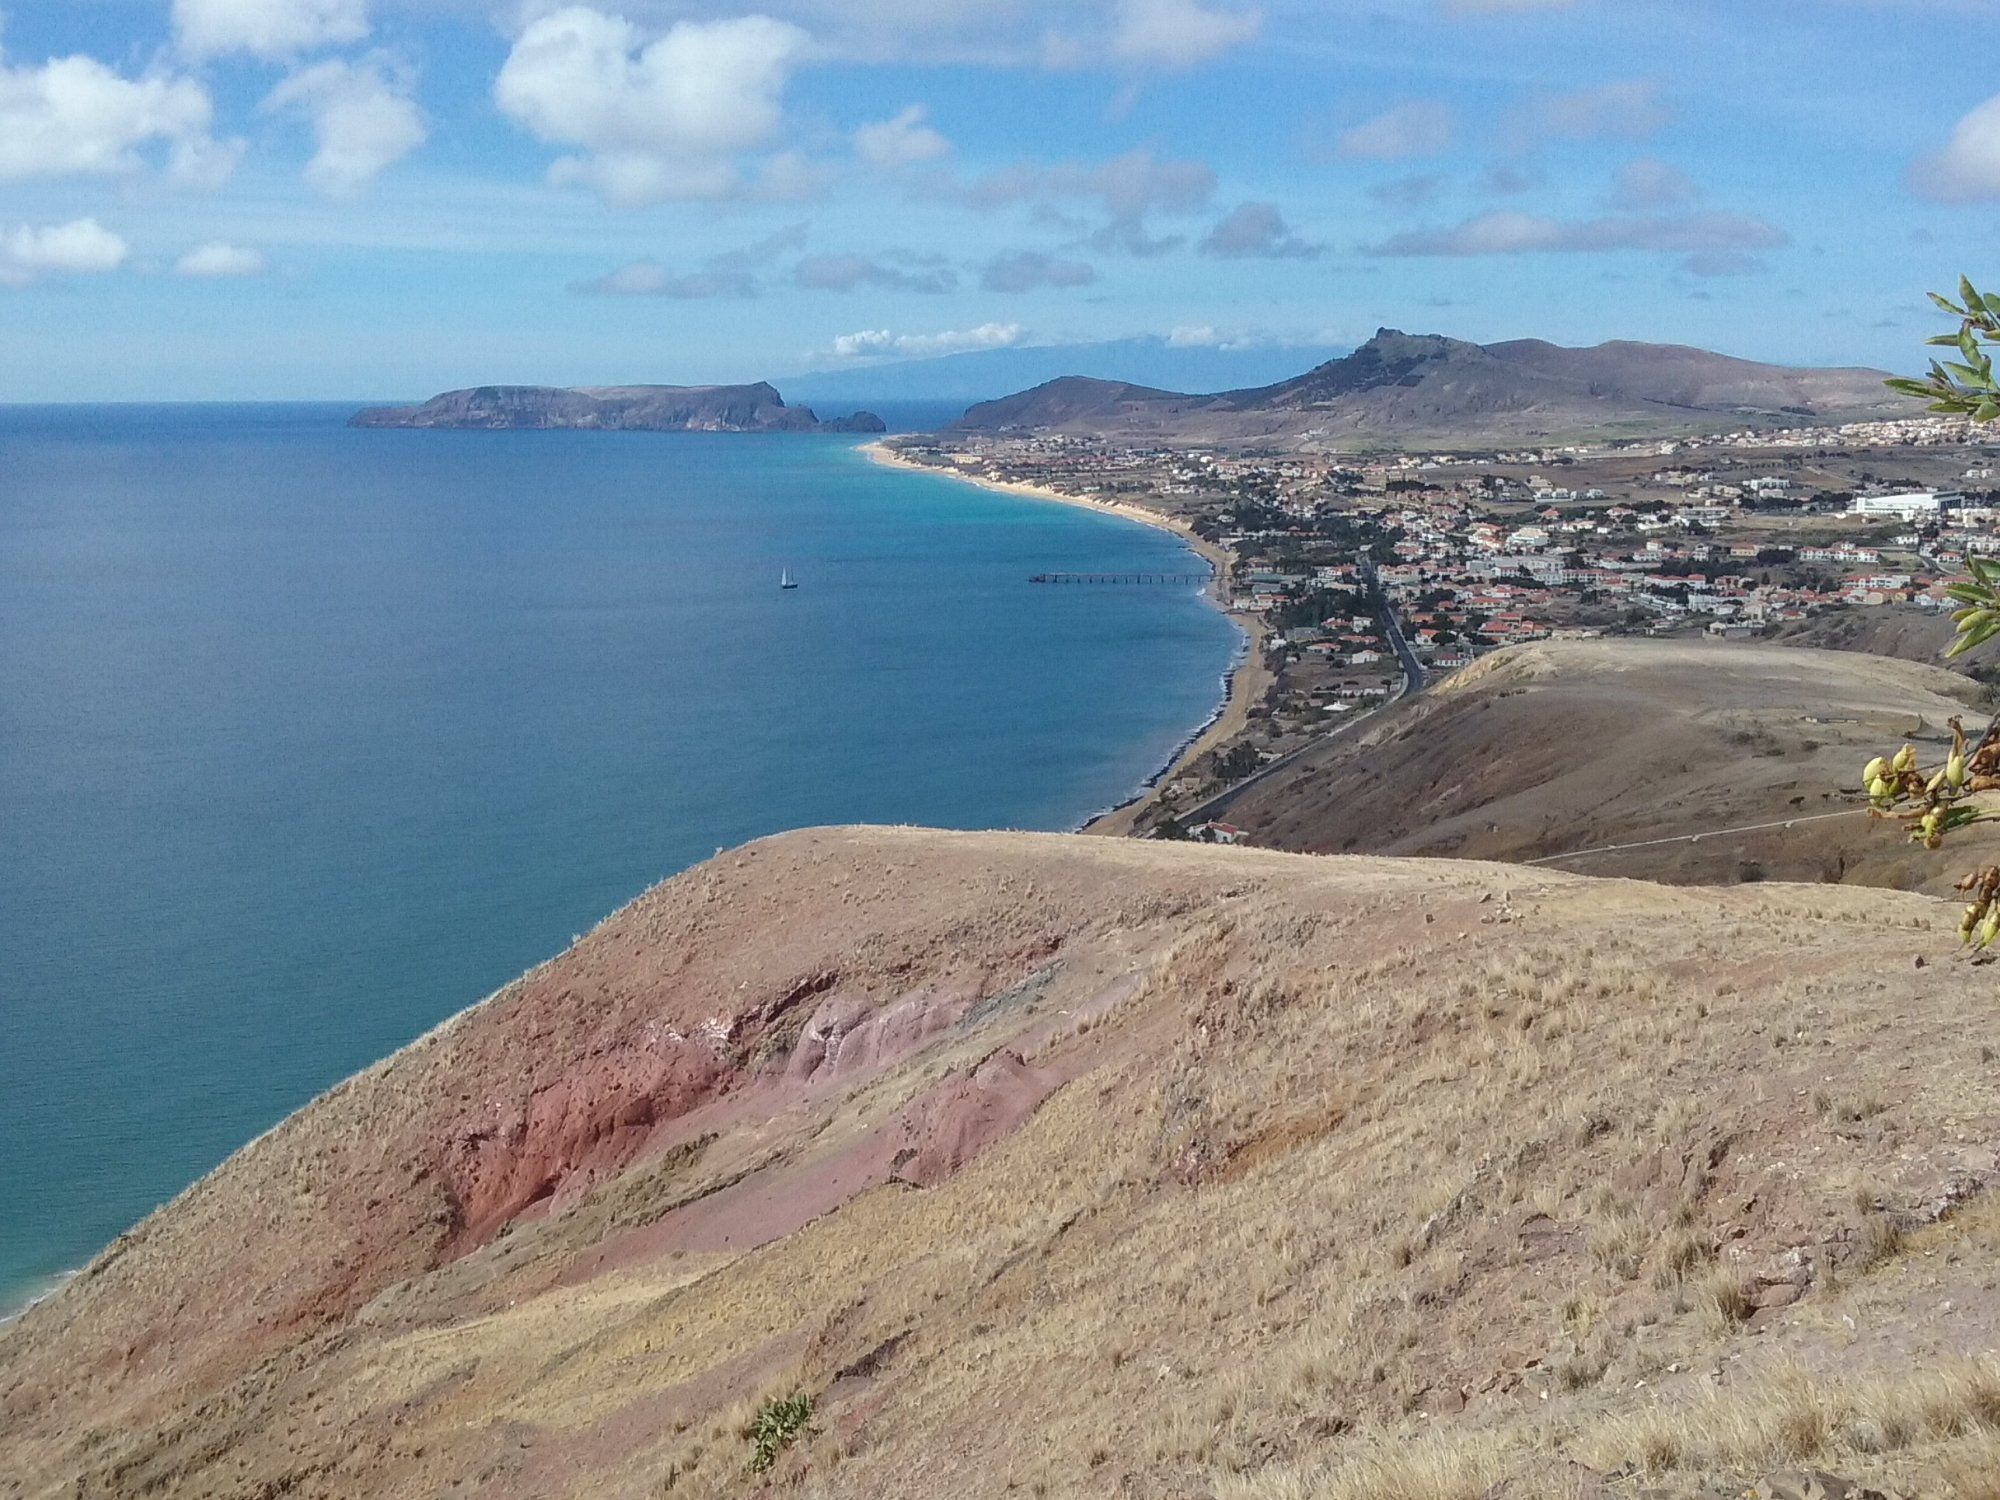 Portela Viewpoint, Porto Santo Island: See 146 reviews, articles, and 65 photos of Portela Viewpoint, ranked No.3 on TripAdvisor among 25 attractions in Porto Santo Island.